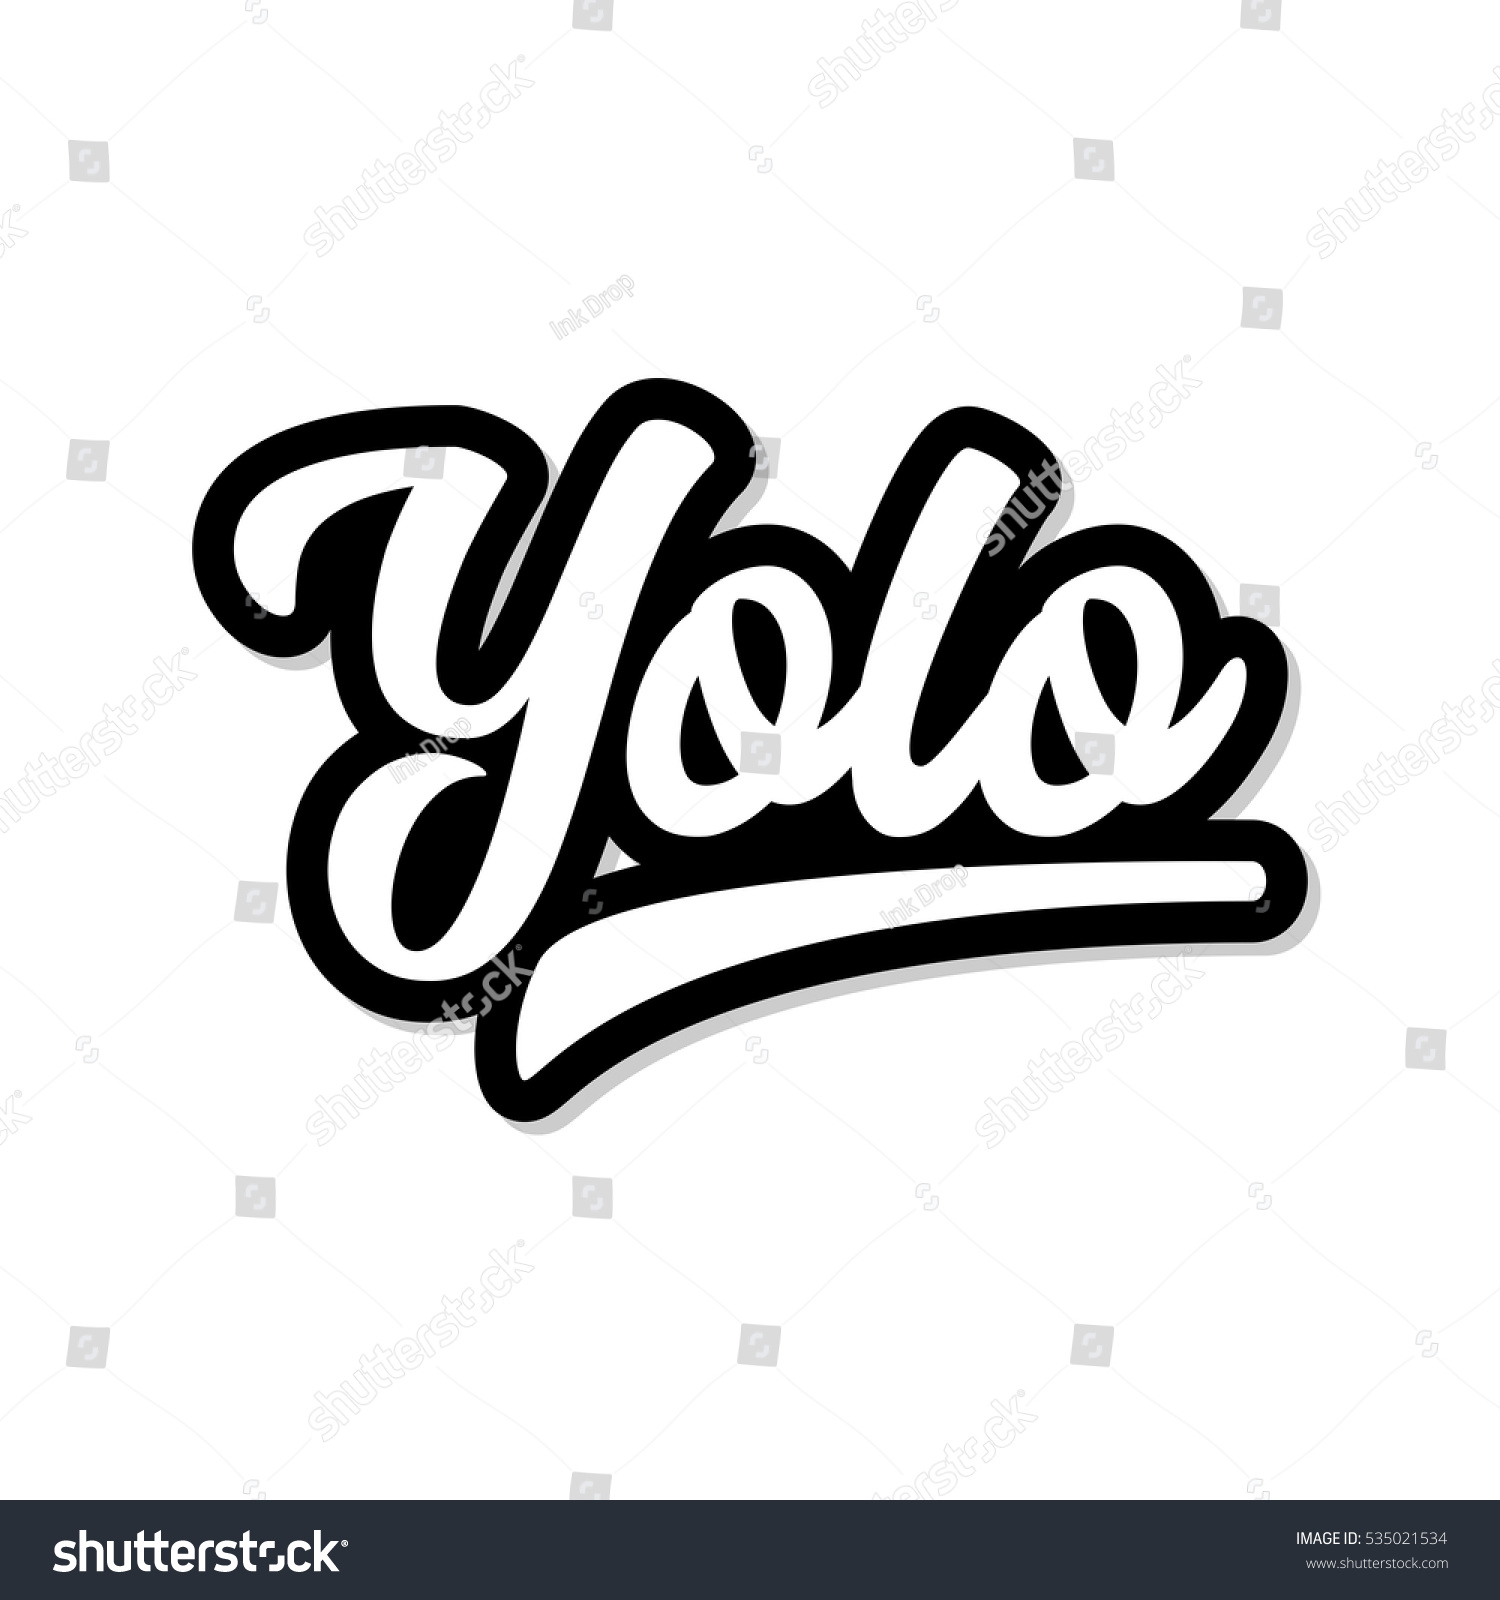 Yolo inspirational motivational quote graphic white text with black shadow